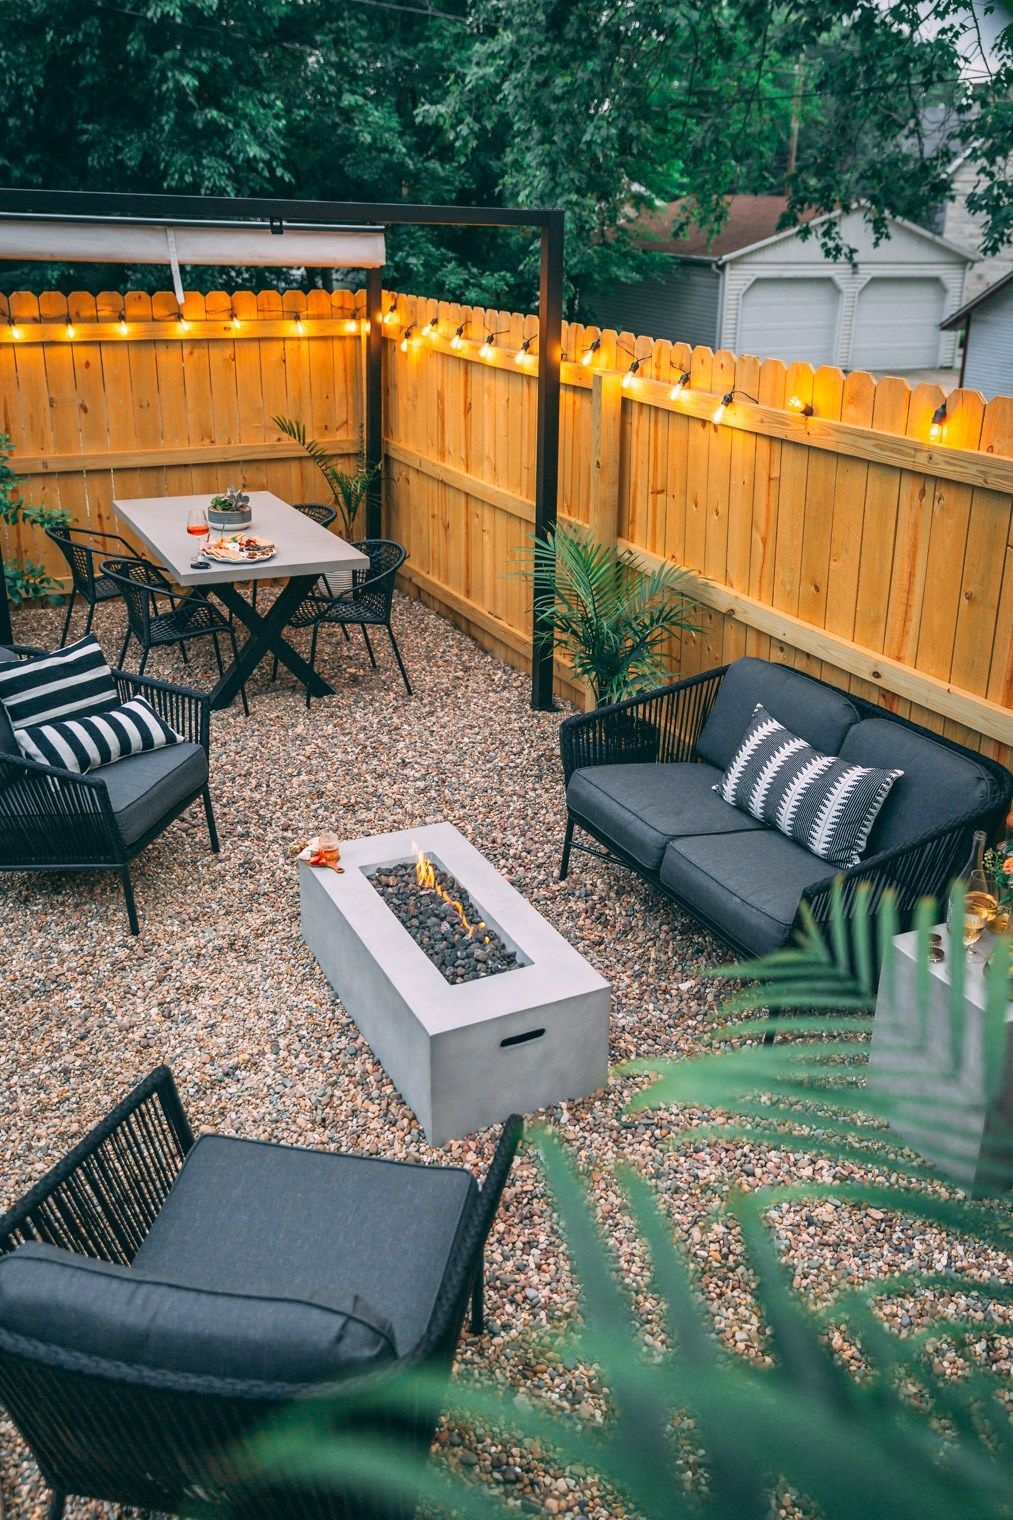 Backyard Makeover with Harvest Organics! #backyardmakeover